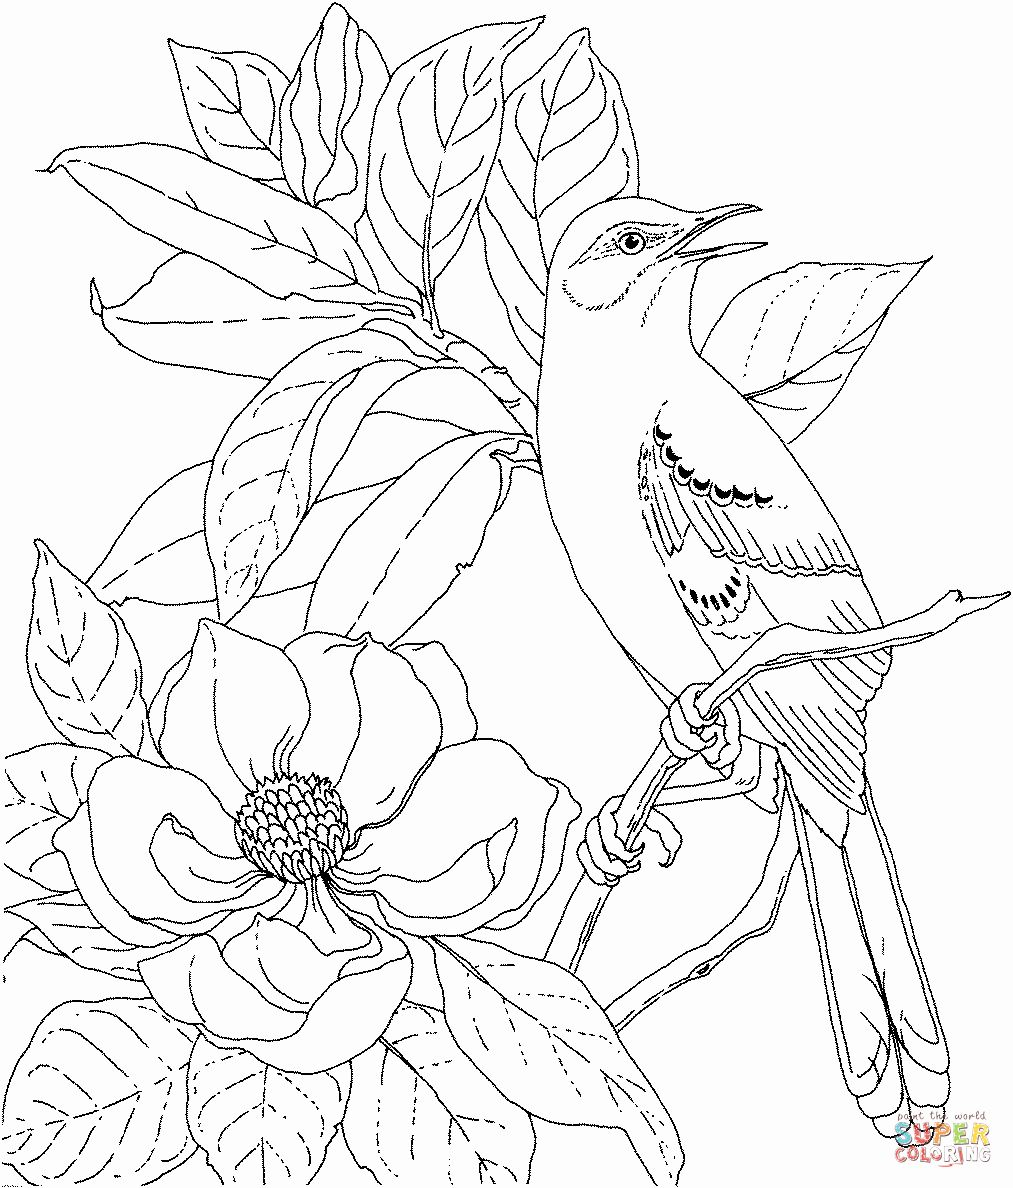 Texas State Bird Coloring Page Unique Louisiana State Bird And